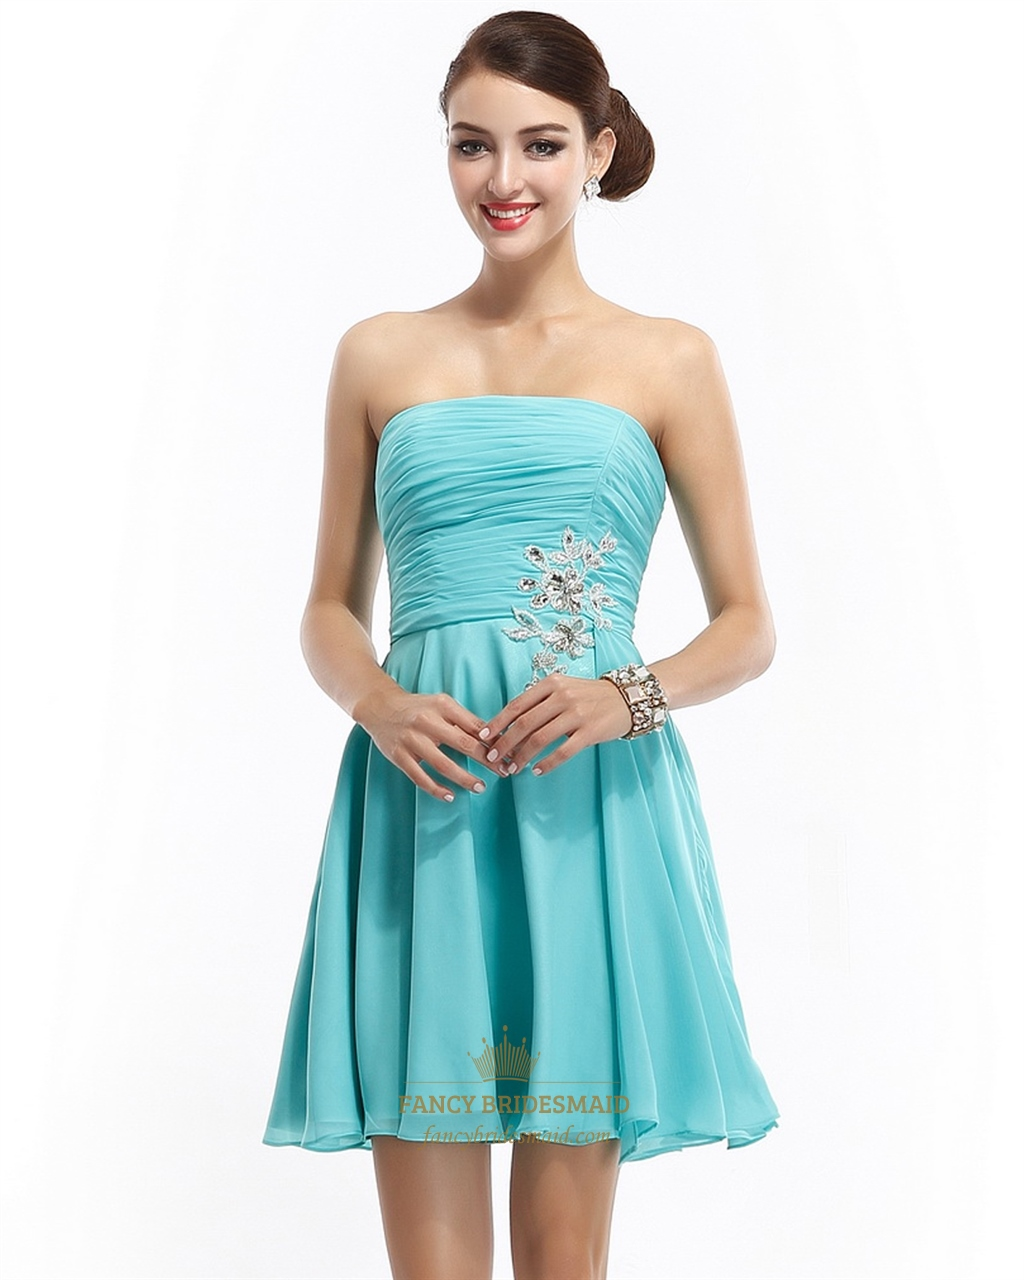 aqua blue strapless short chiffon bridesmaid dress with